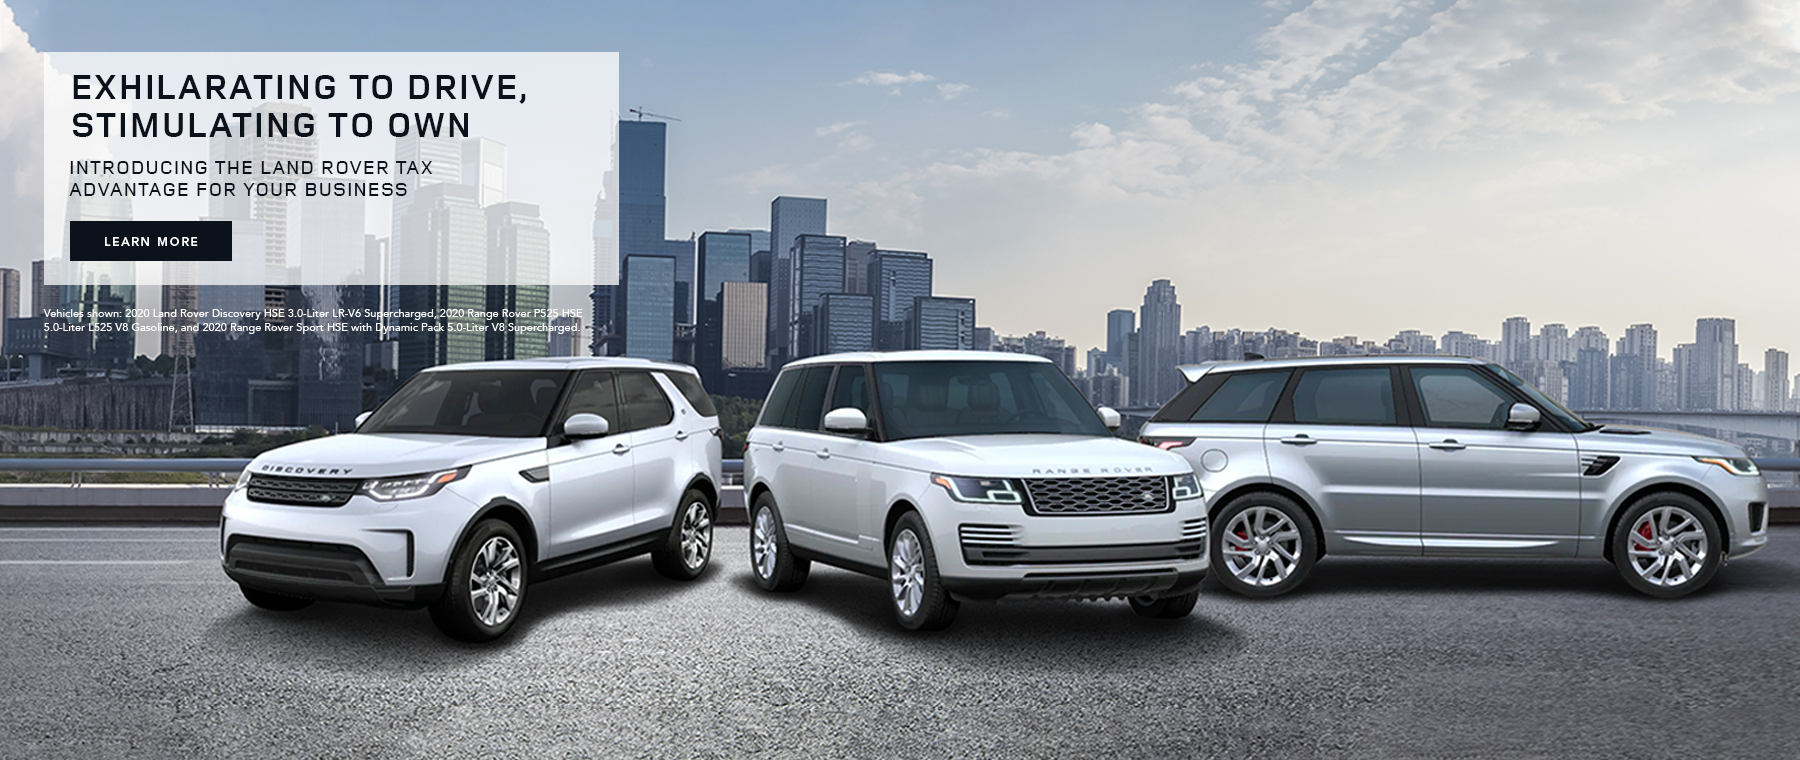 Exhilarating to Drive, Stimulating to own. Introducing the Land Rover TAX Advantage for your business